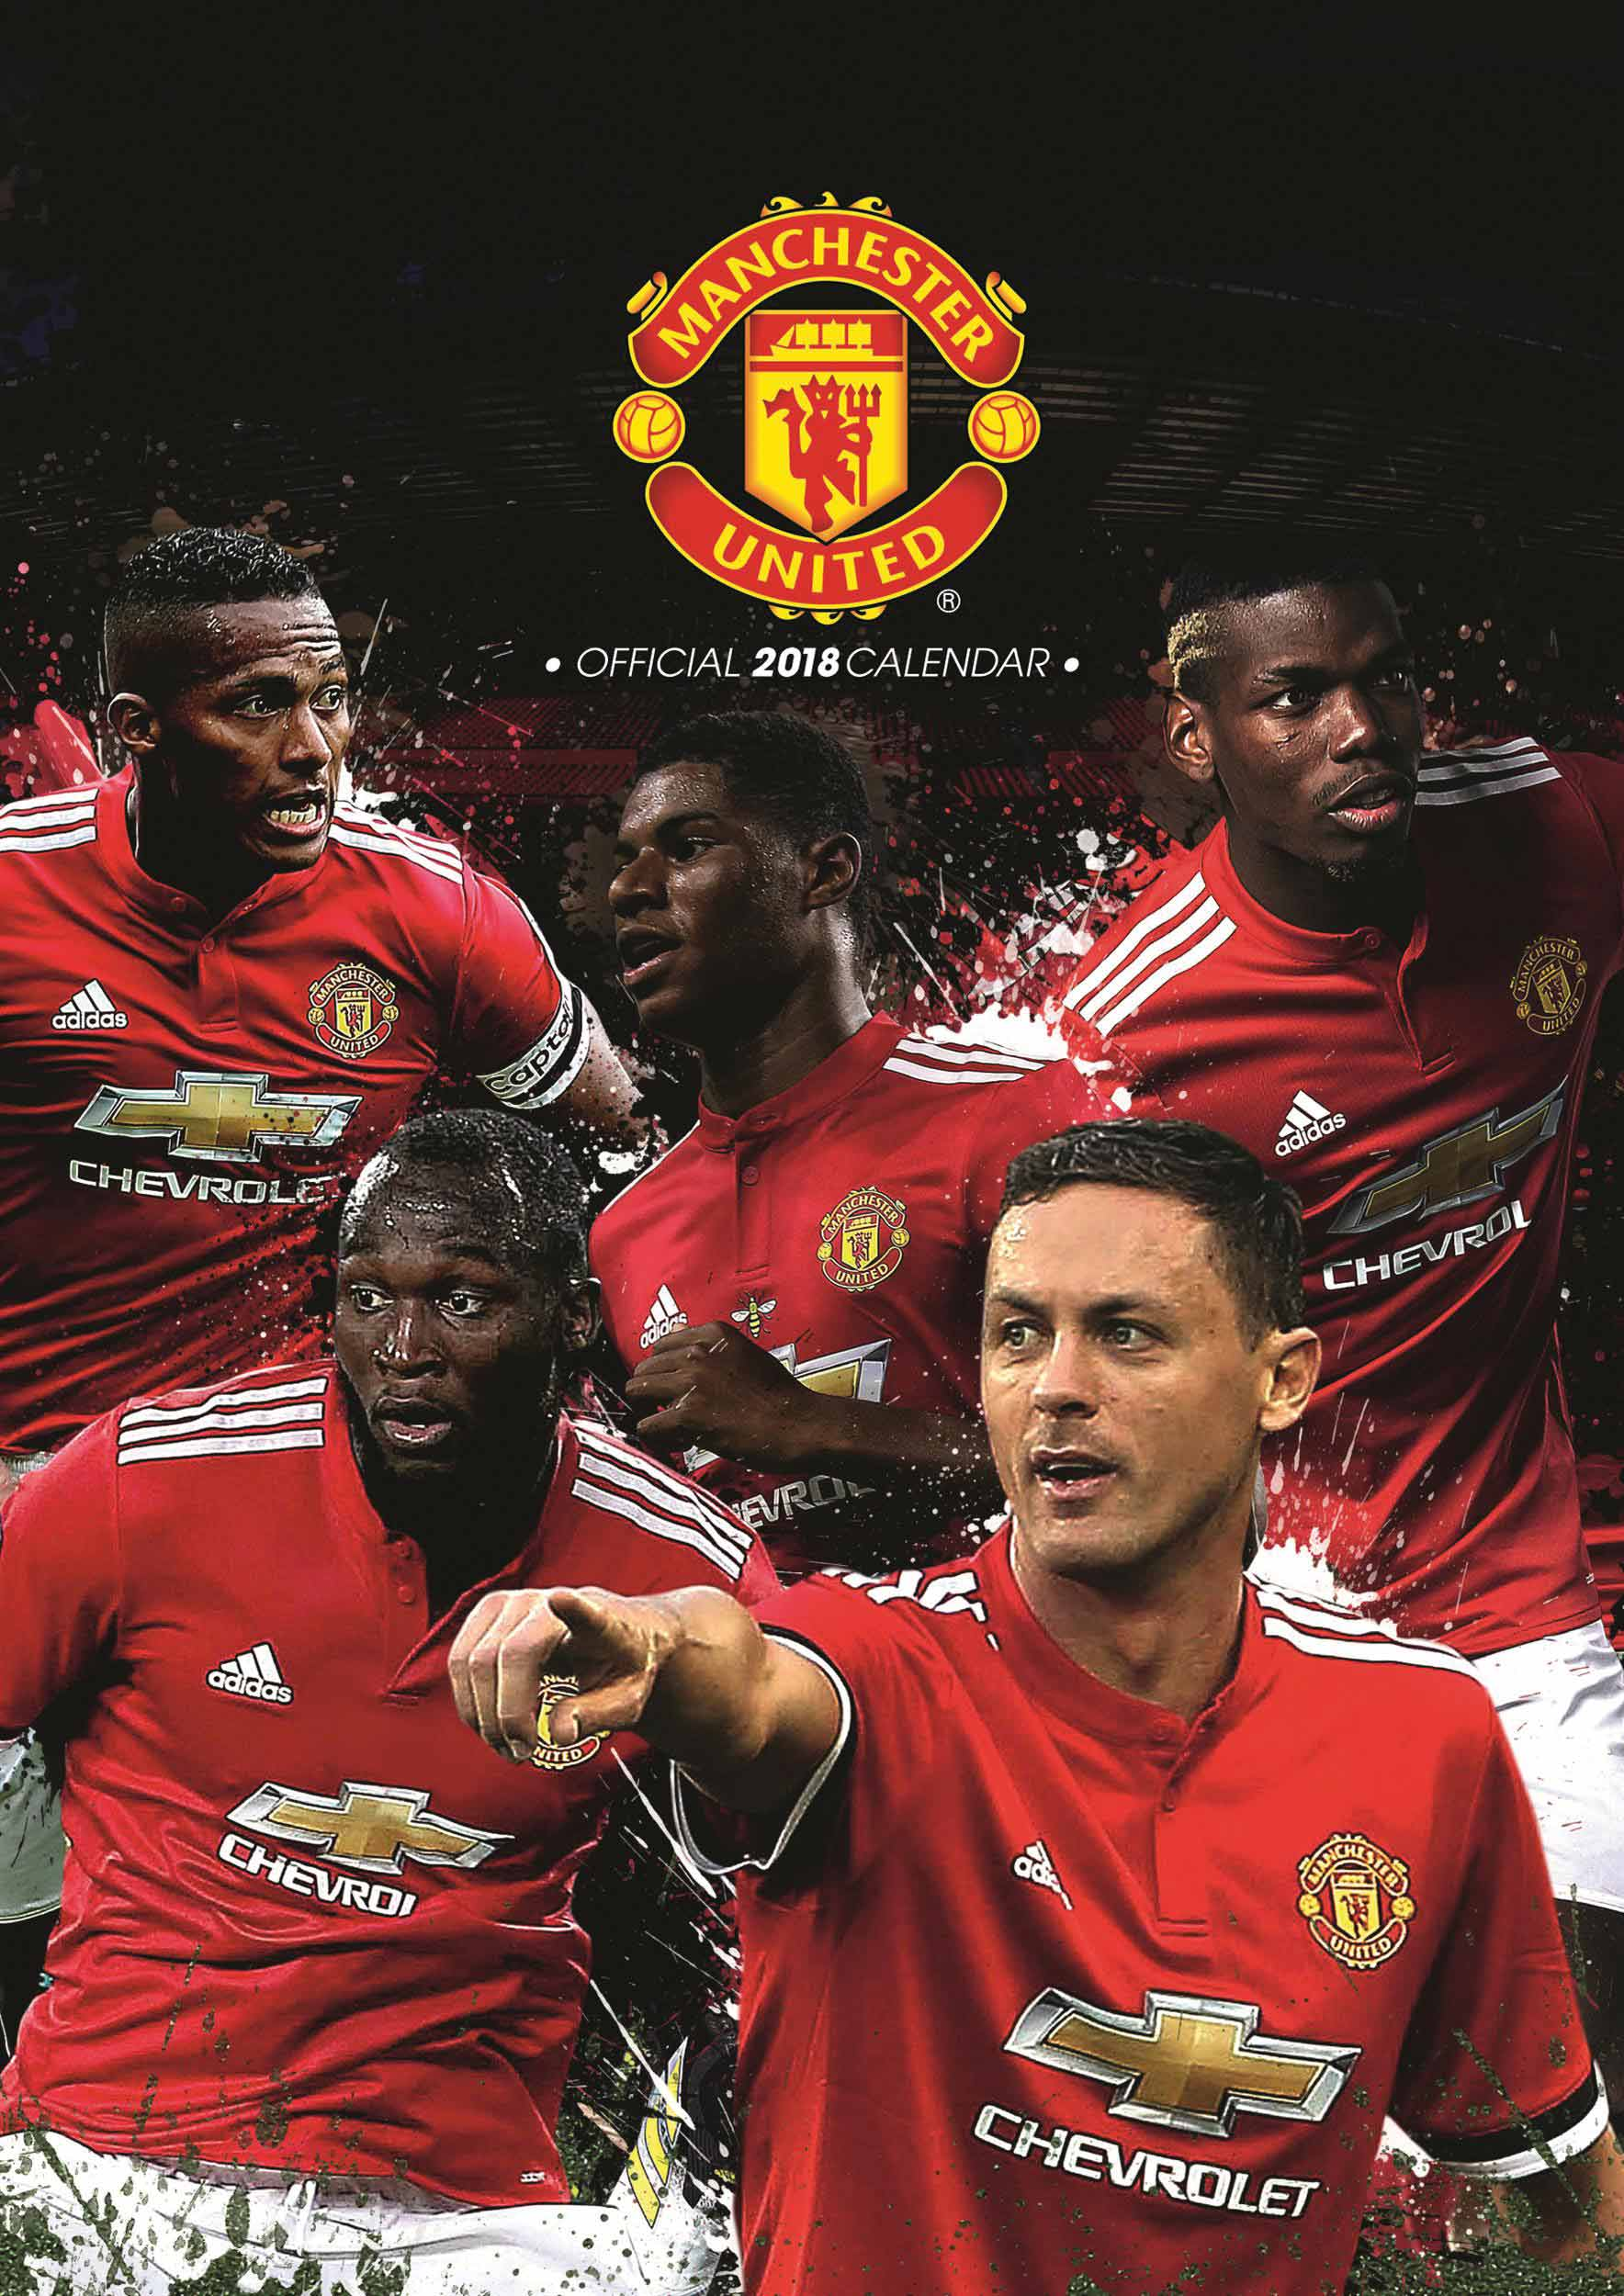 Manchester United Wallpaper Manchester United Wallpaper Players